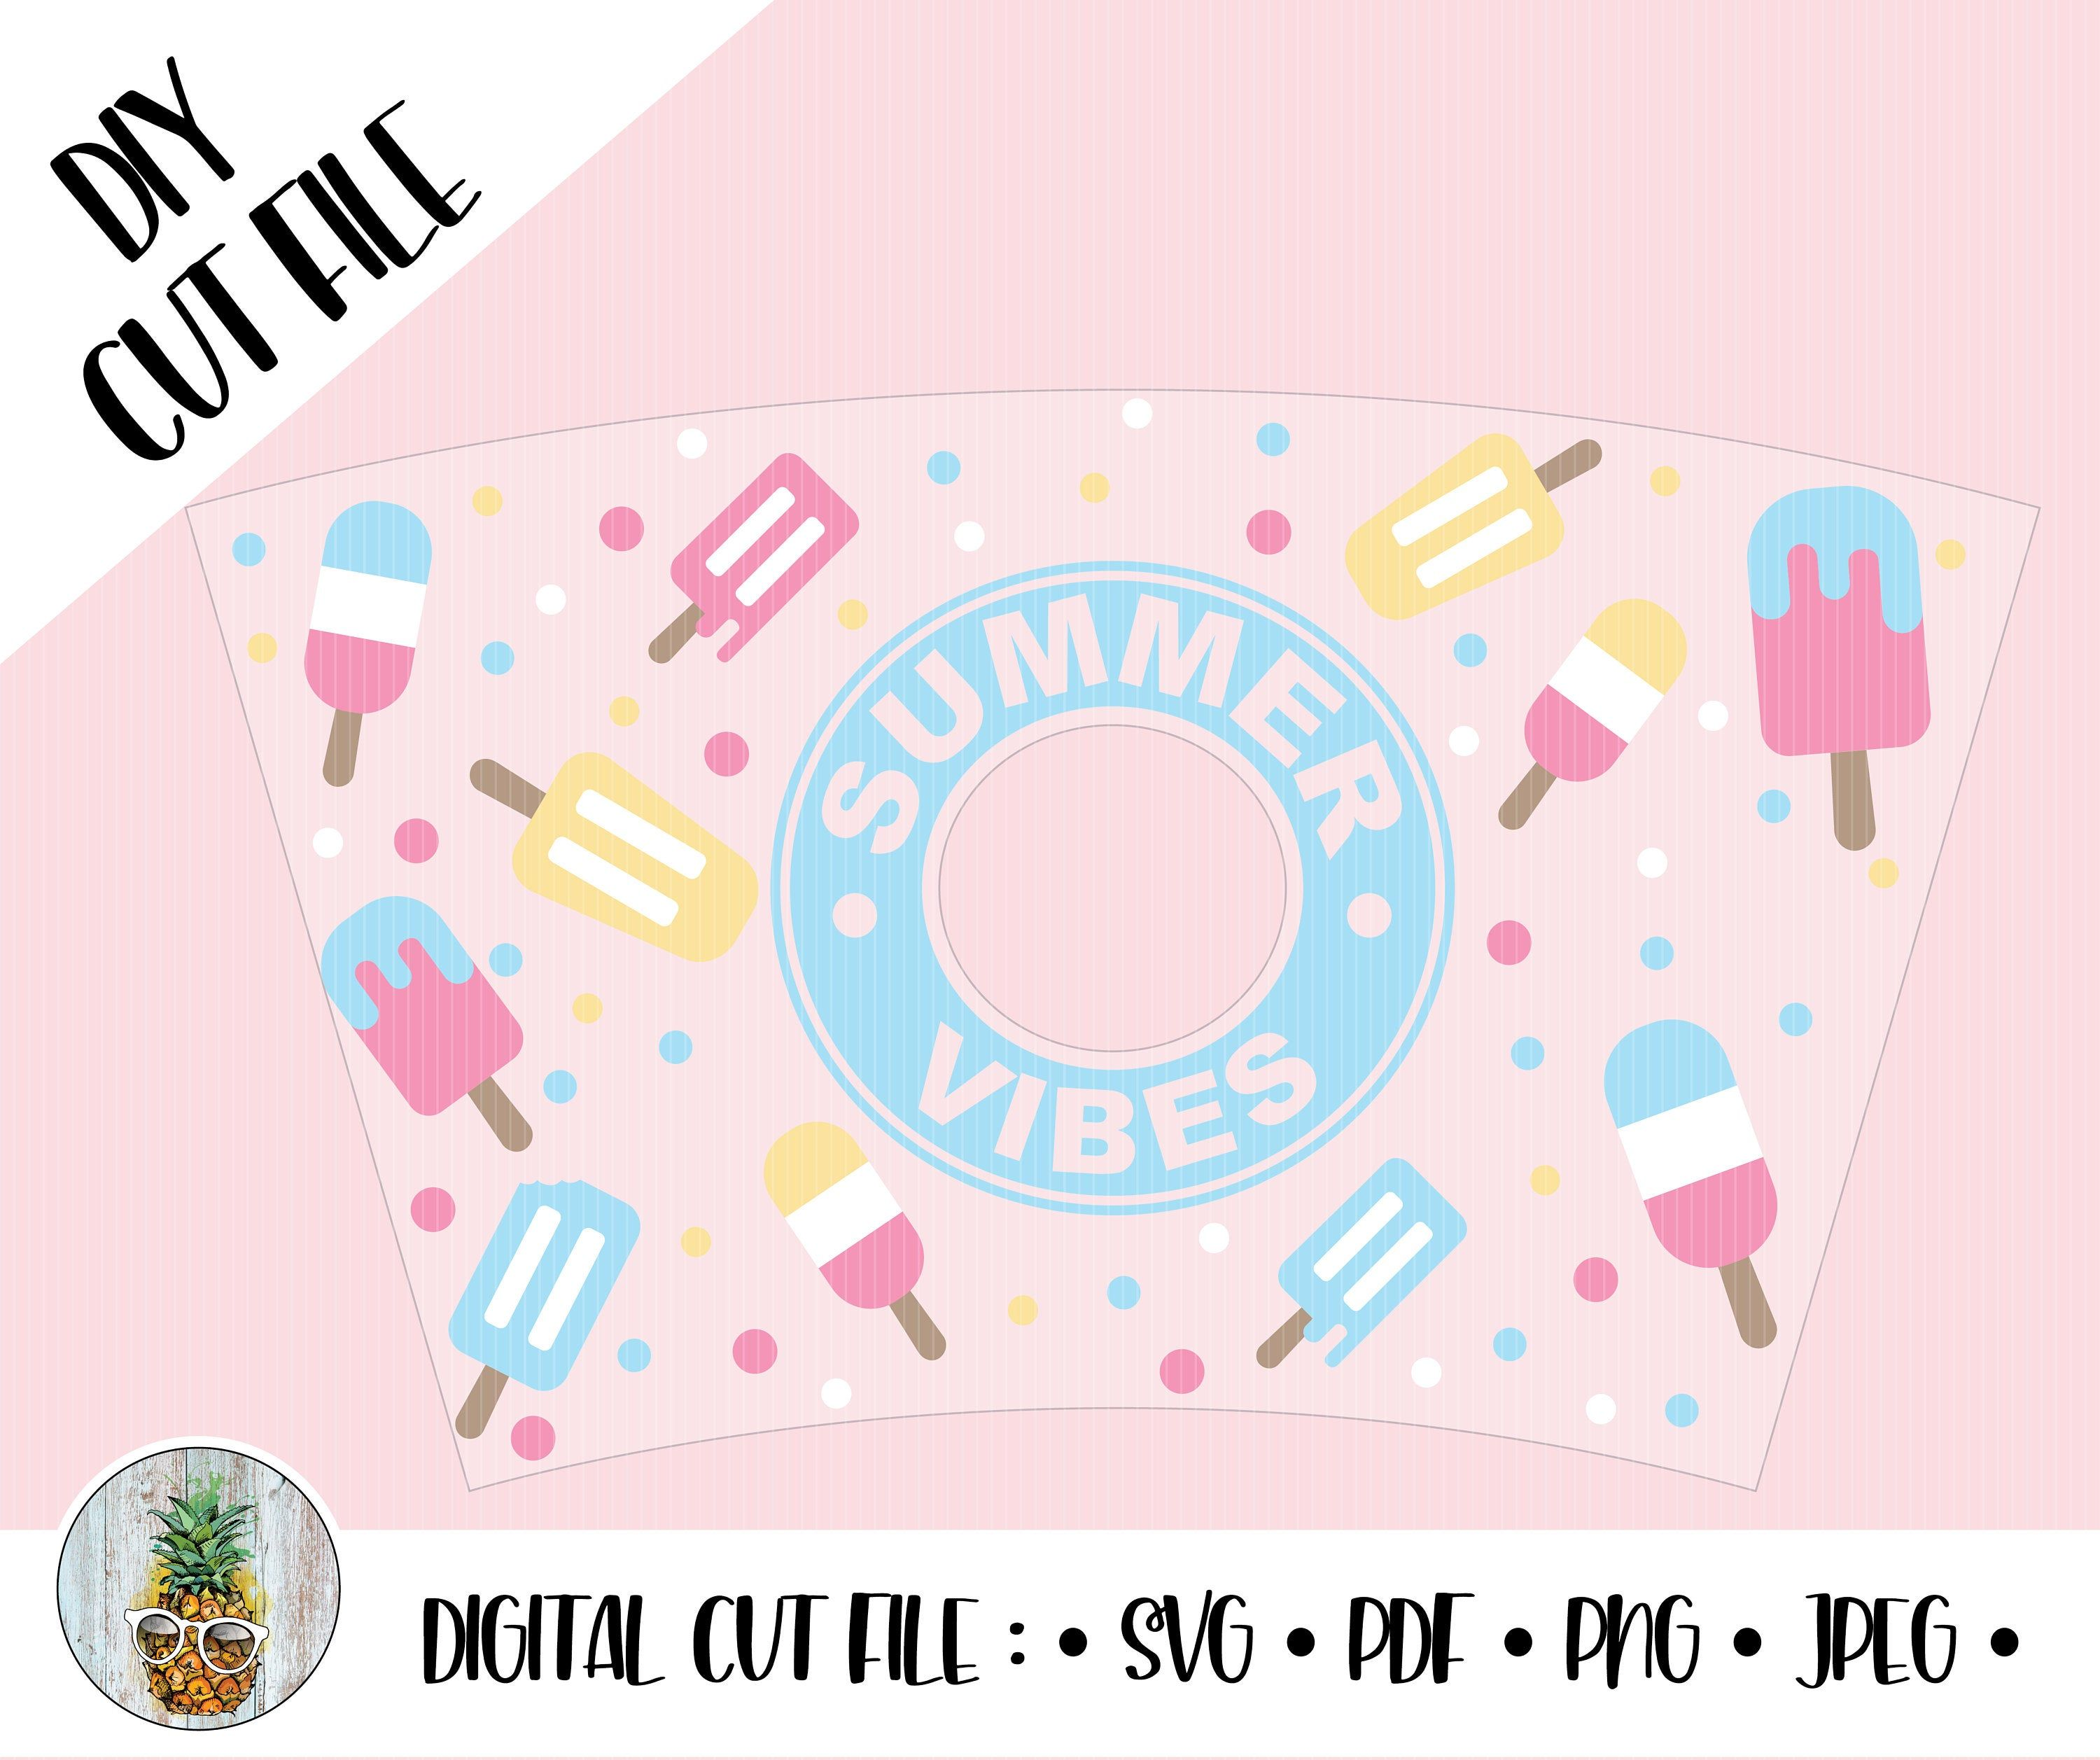 Summer Vibes Popsicle Starbucks Cup Wrap 20oz Cold Drink